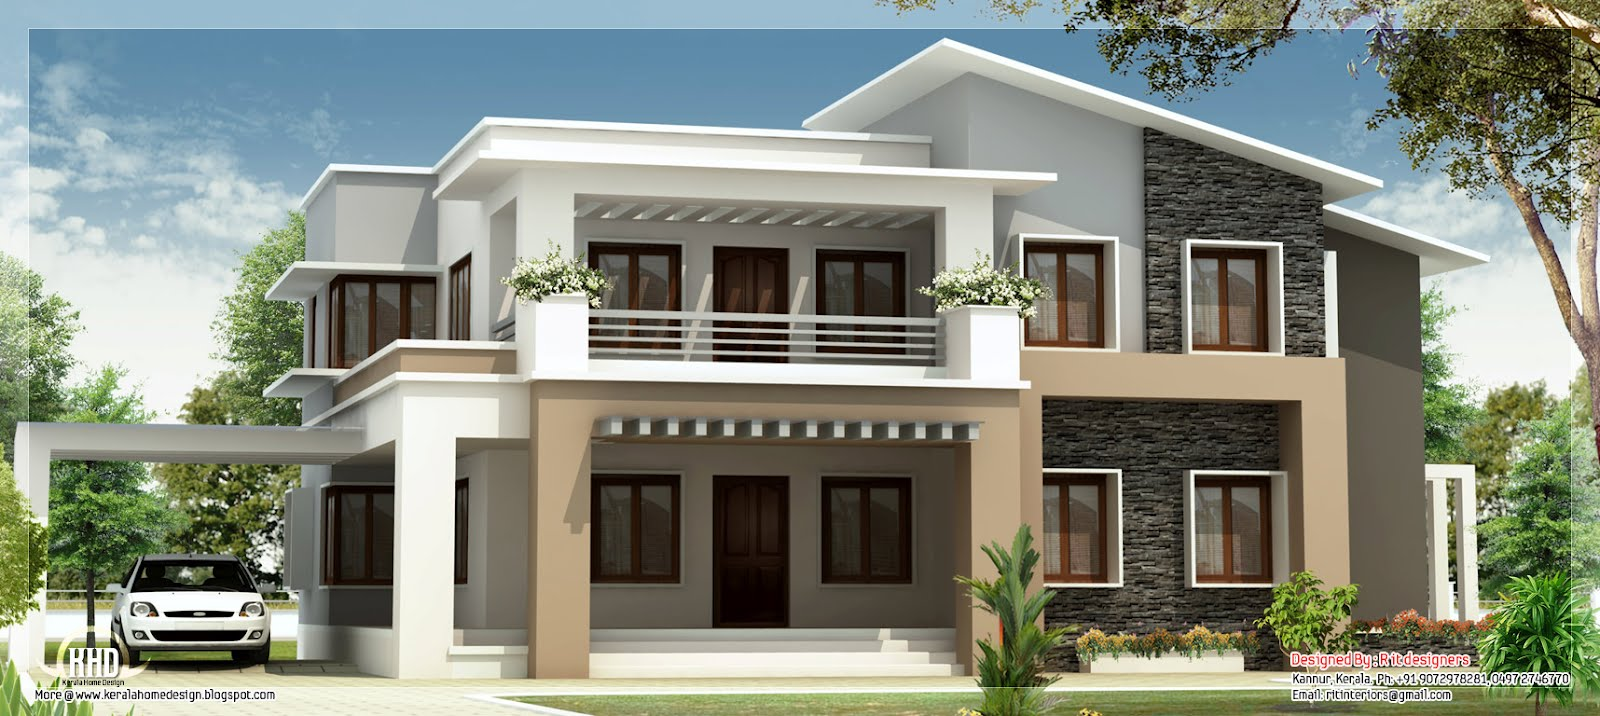 Modern mix double floor home design kerala home design 2500 sq ft house plans indian style